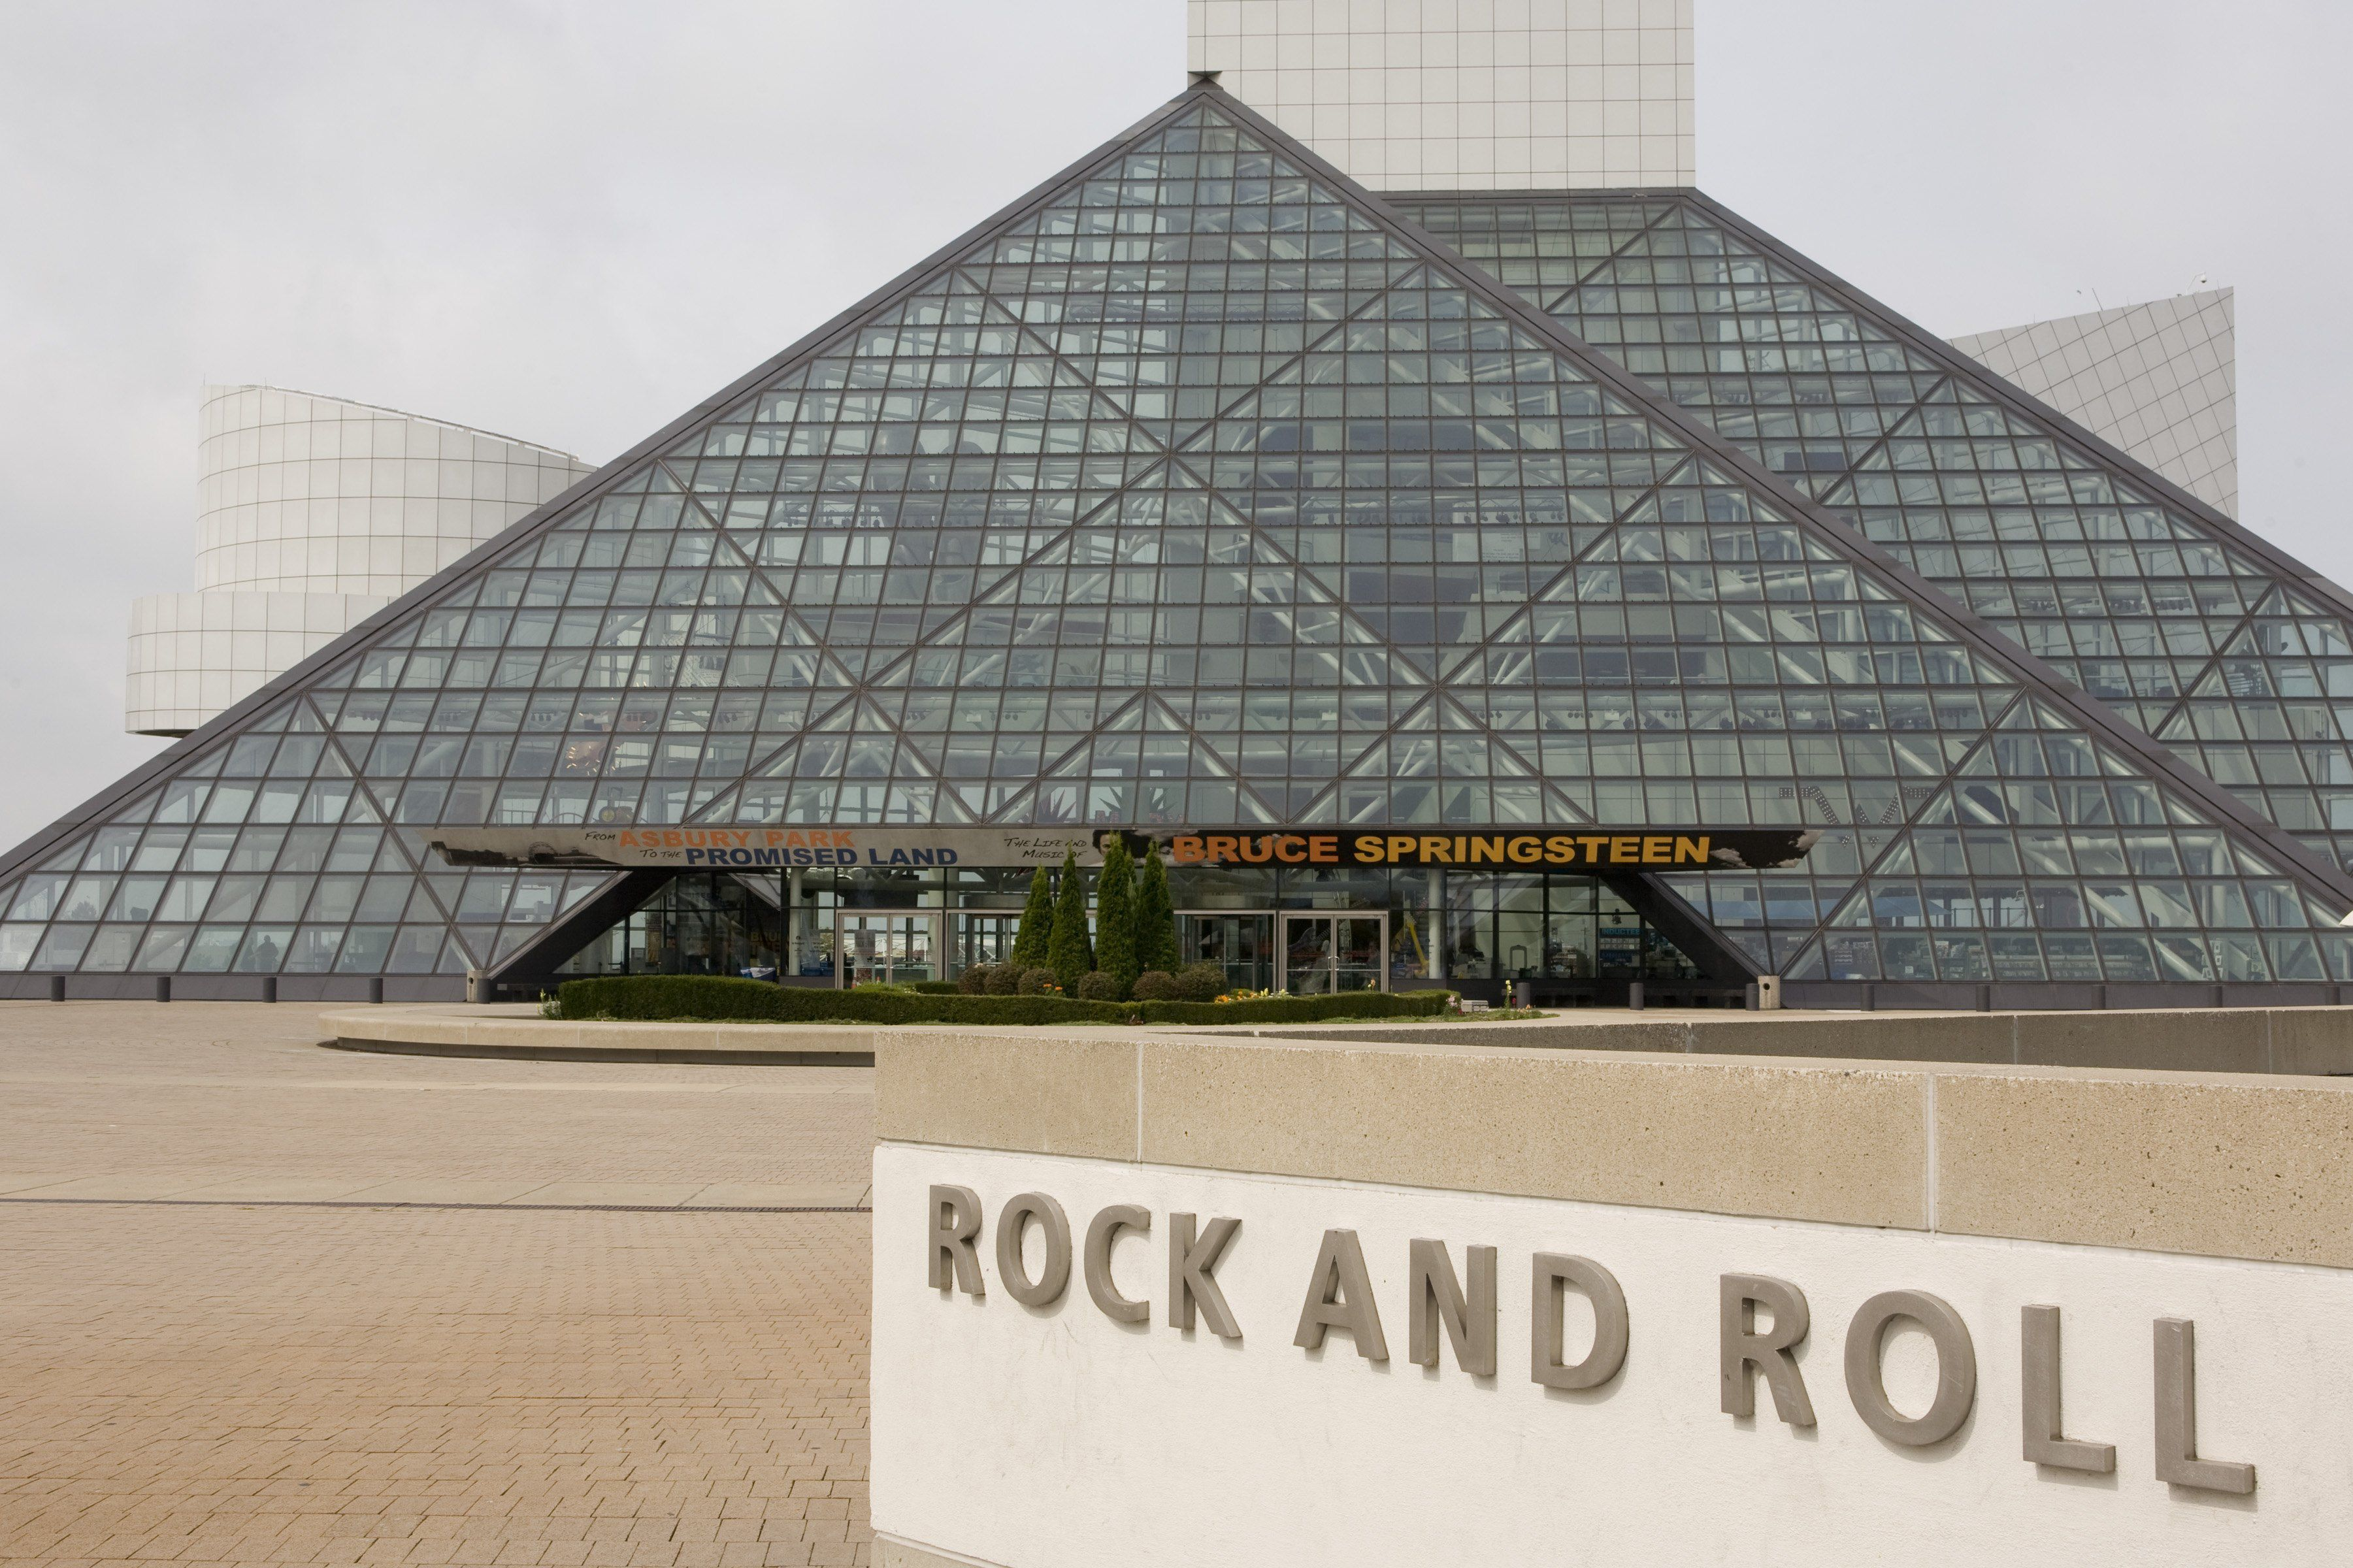 glass pyramid with sign in foreground: ROCK AND ROLL